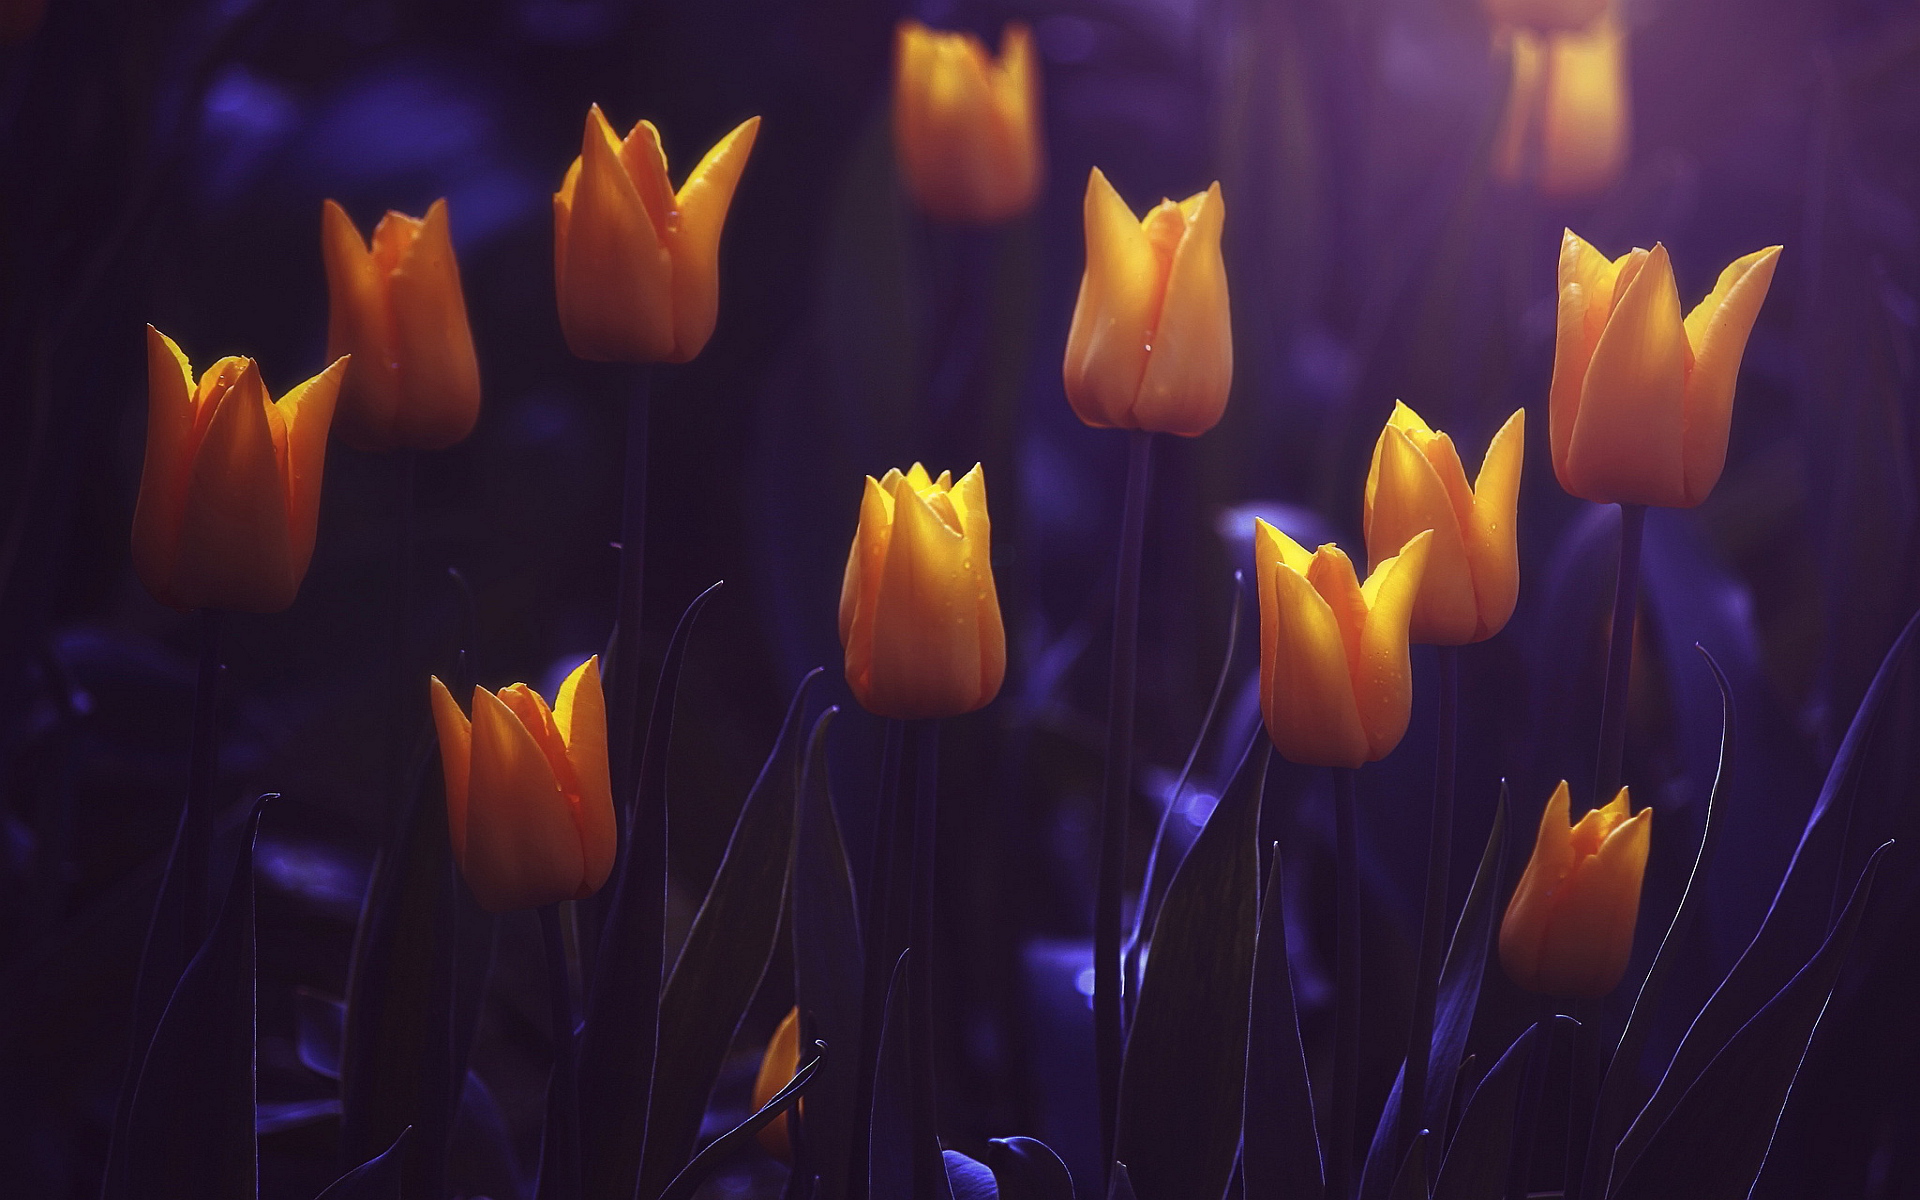 Shining yellow tulips